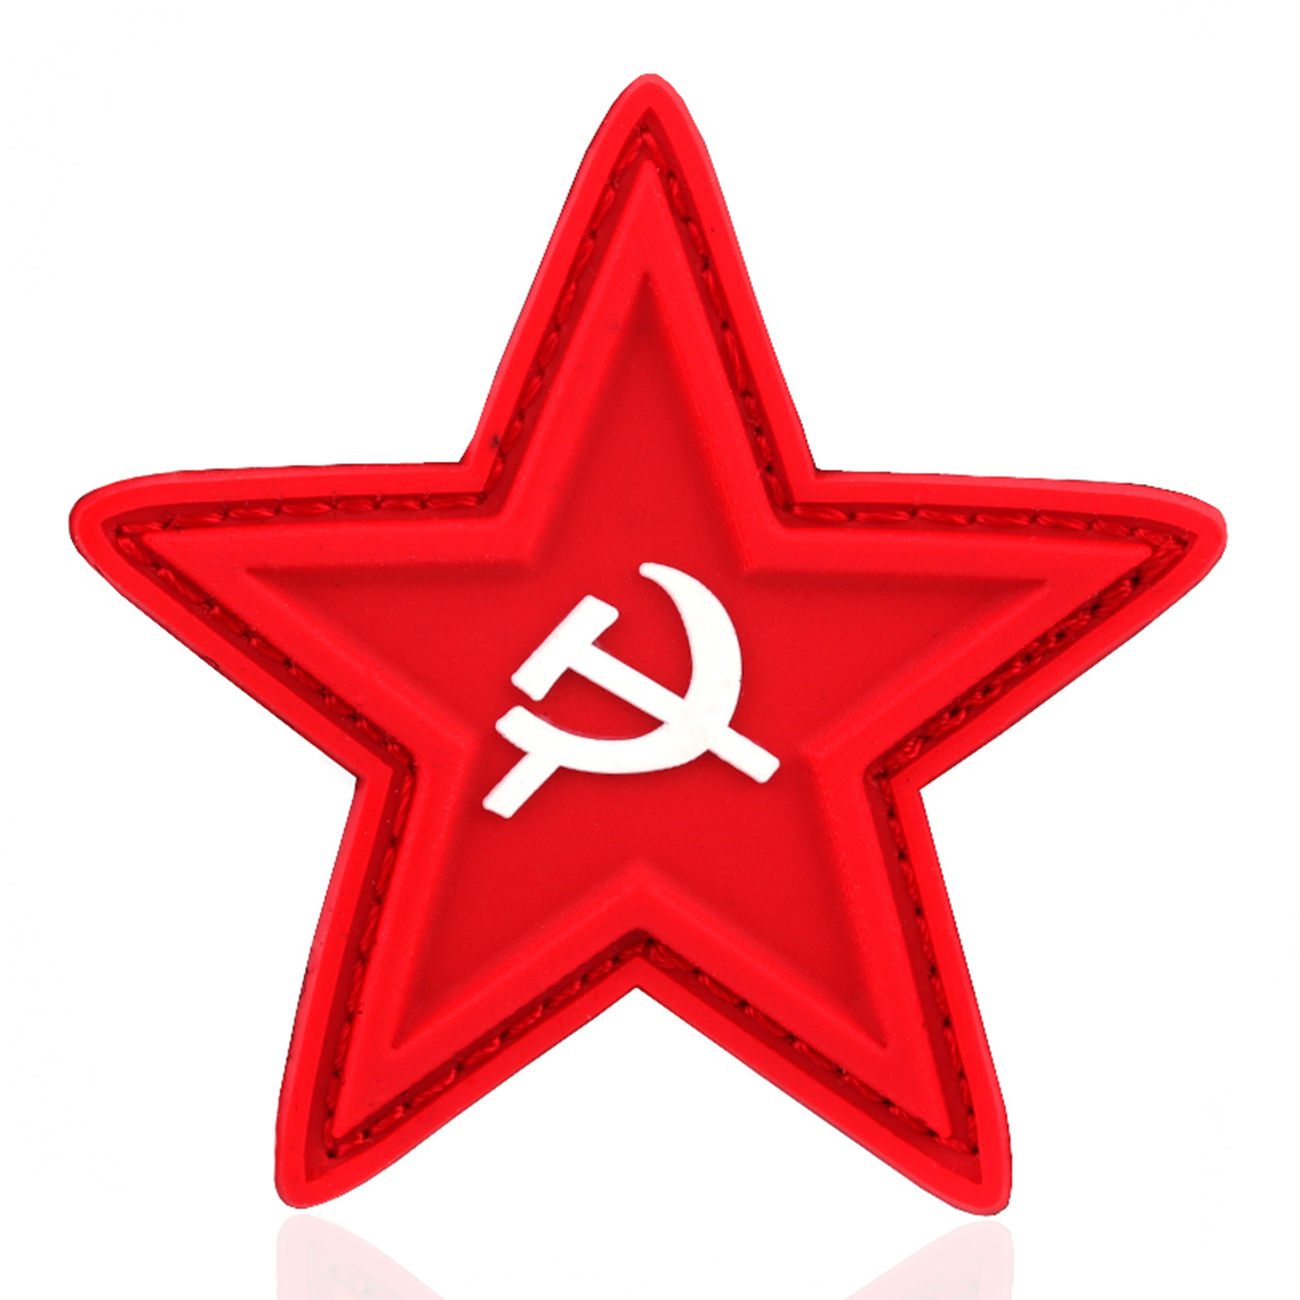 101 INC. 3D Rubber Patch red star with hammer and sickle 0